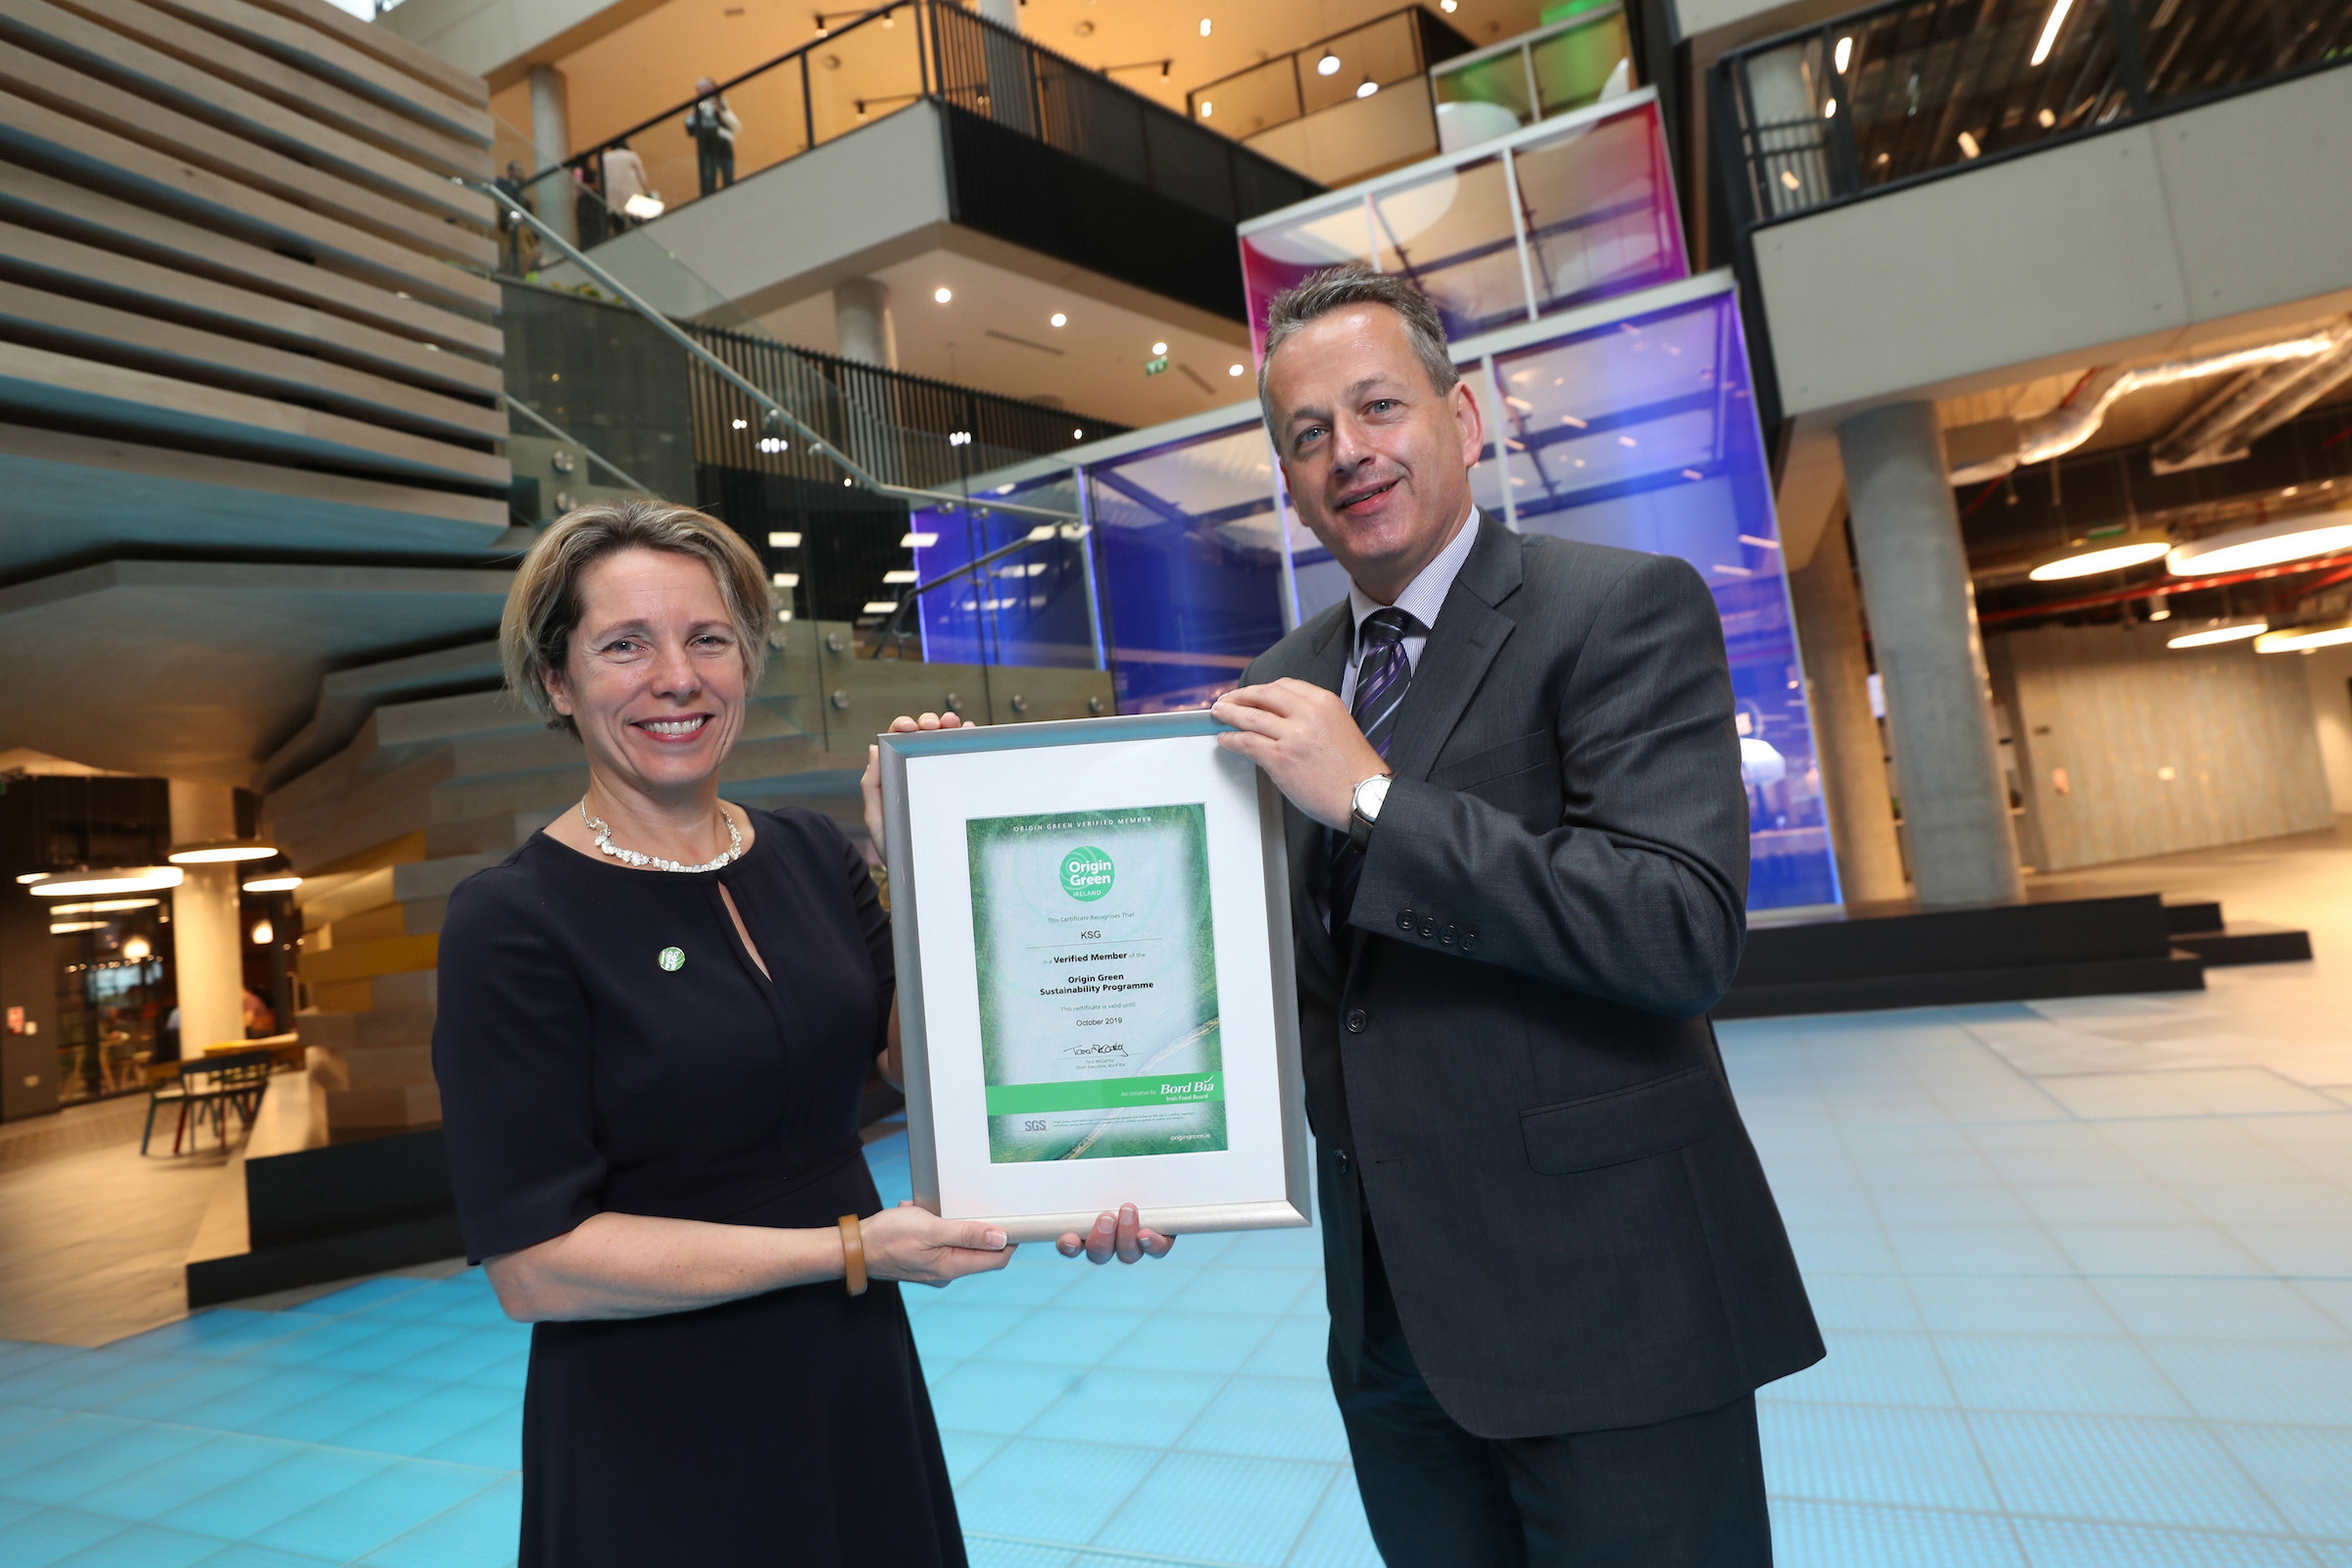 Michael Gleeson (CEO KSG Catering) being presented with the Origin Green Certification by Tara McCarthy (CEO Bord Bia) in the new One Microsoft Place offices in South County Business Park, Leopardstown, Dublin 18. For further information contact Mari O'Leary 01-6789888 marioleary@olearypr.ie